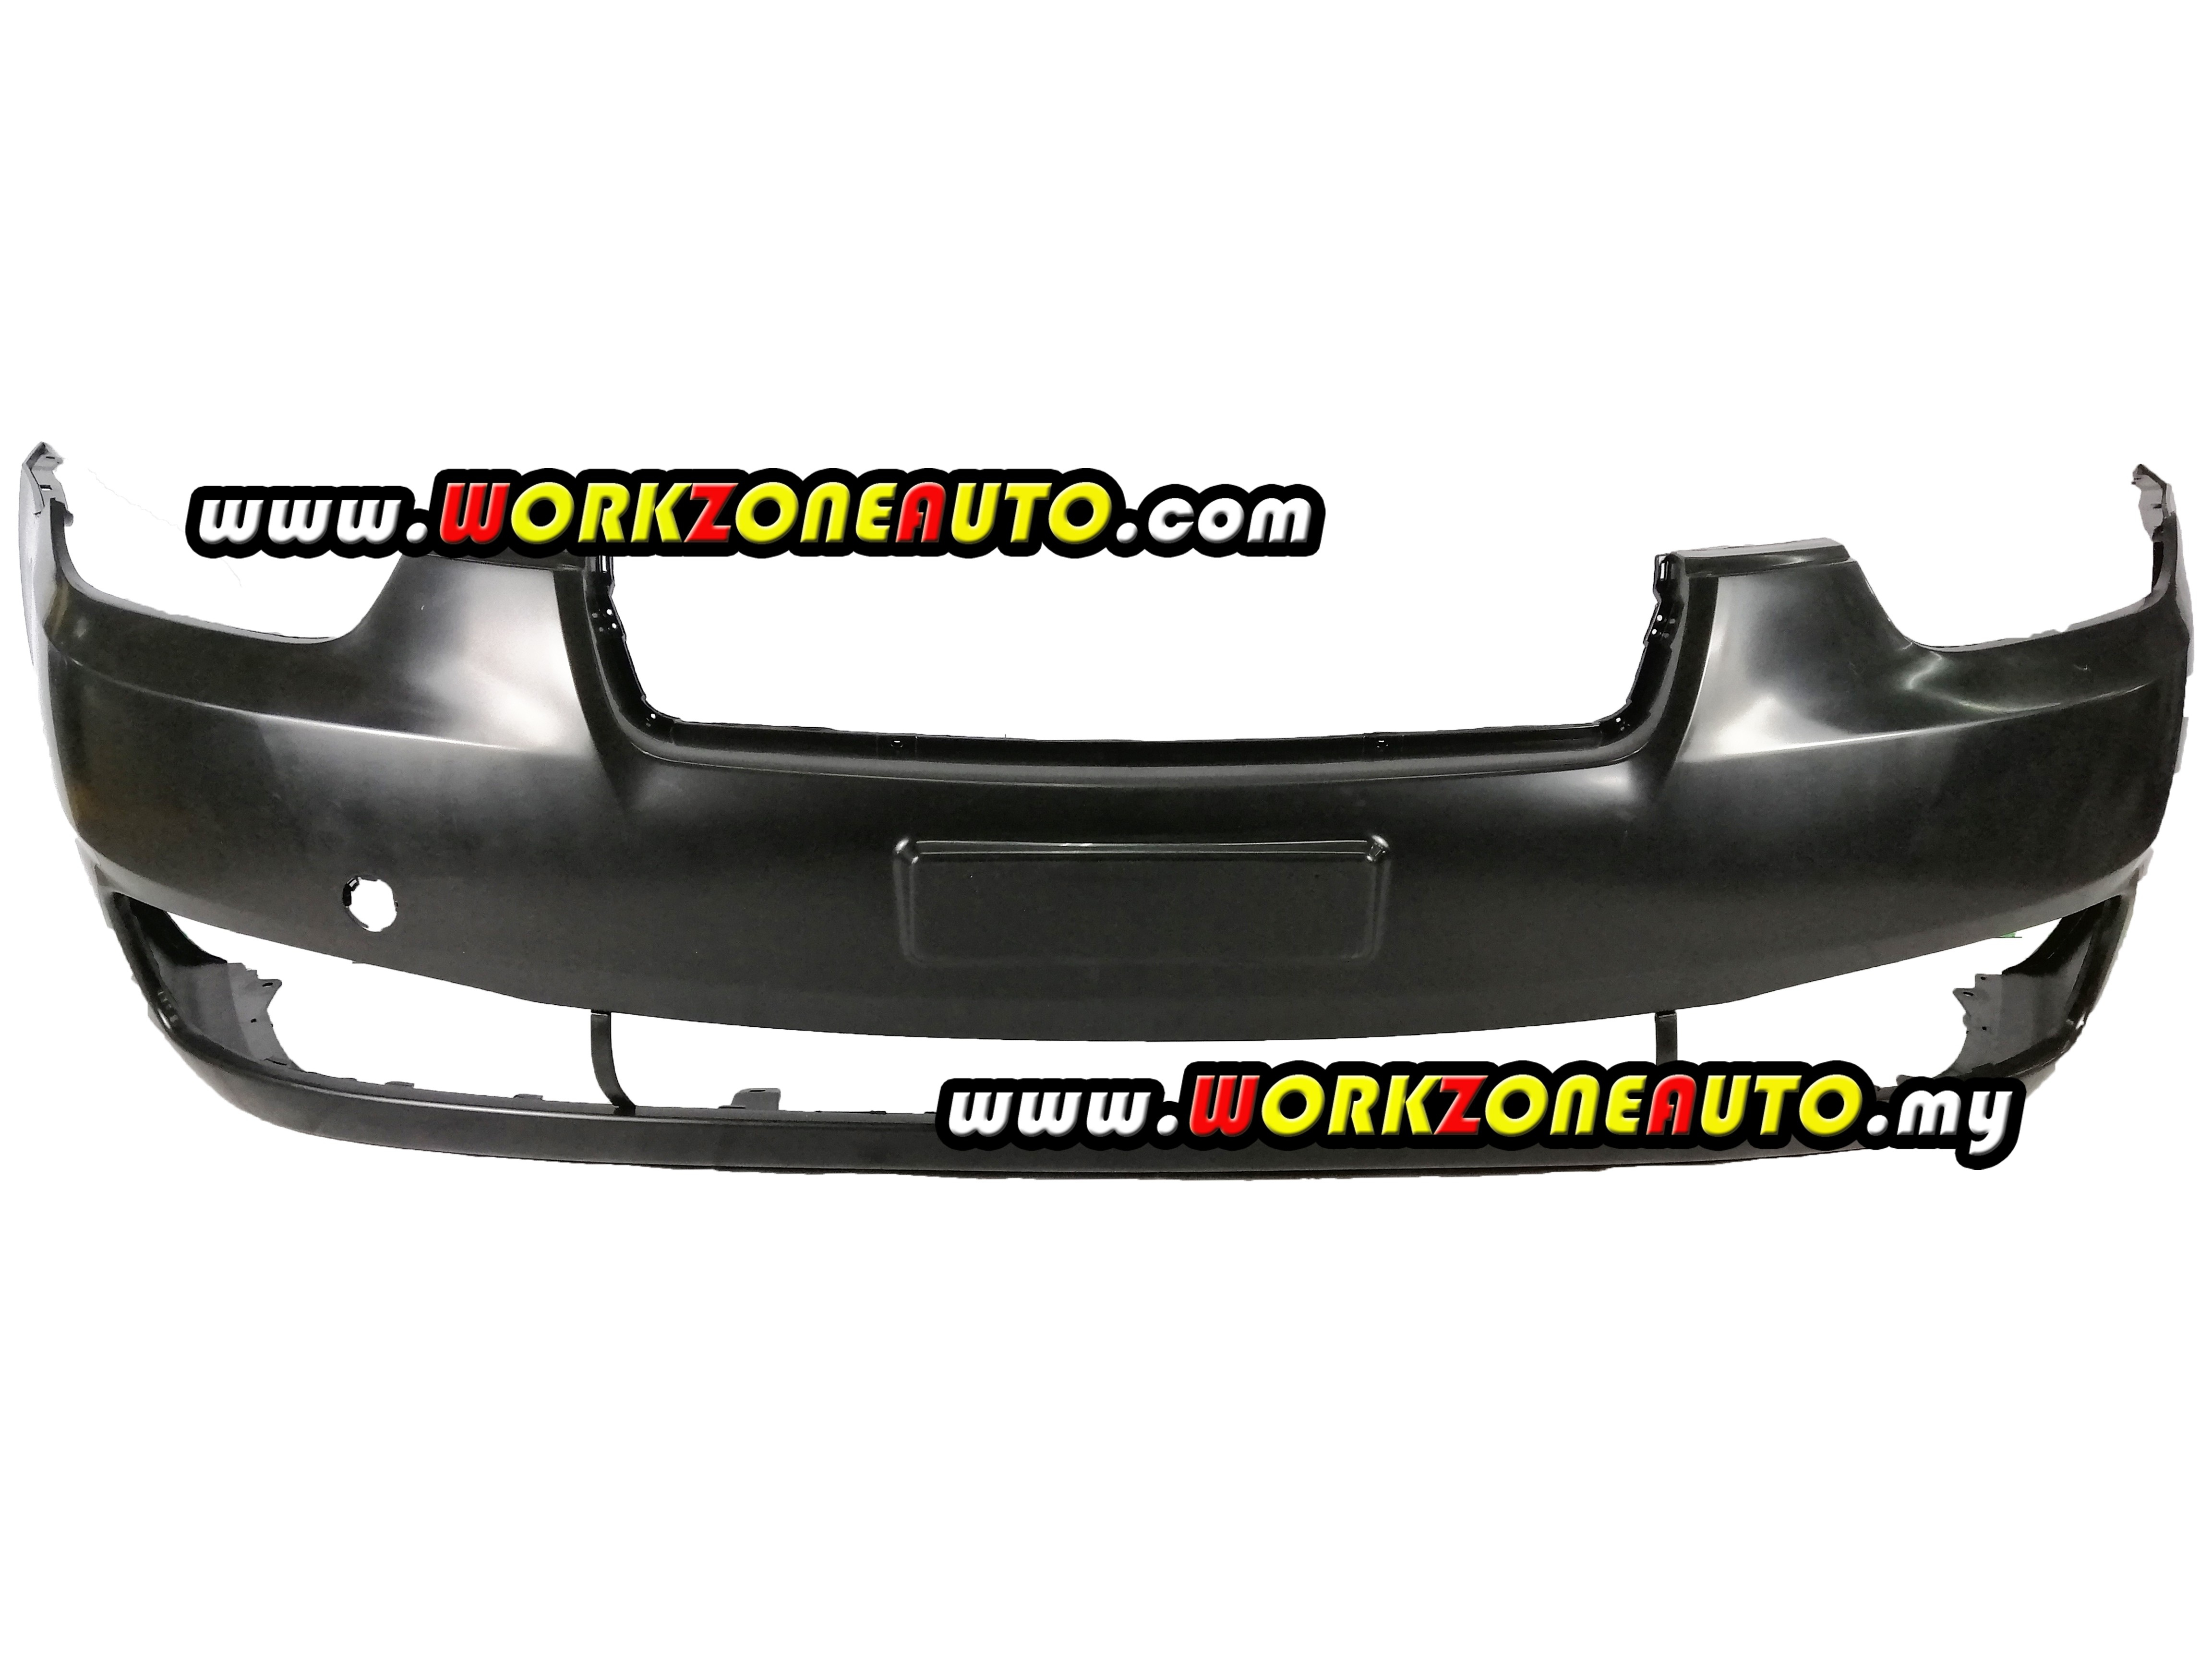 Hyundai Accent MC 2008 Front Bumper Korean Spec